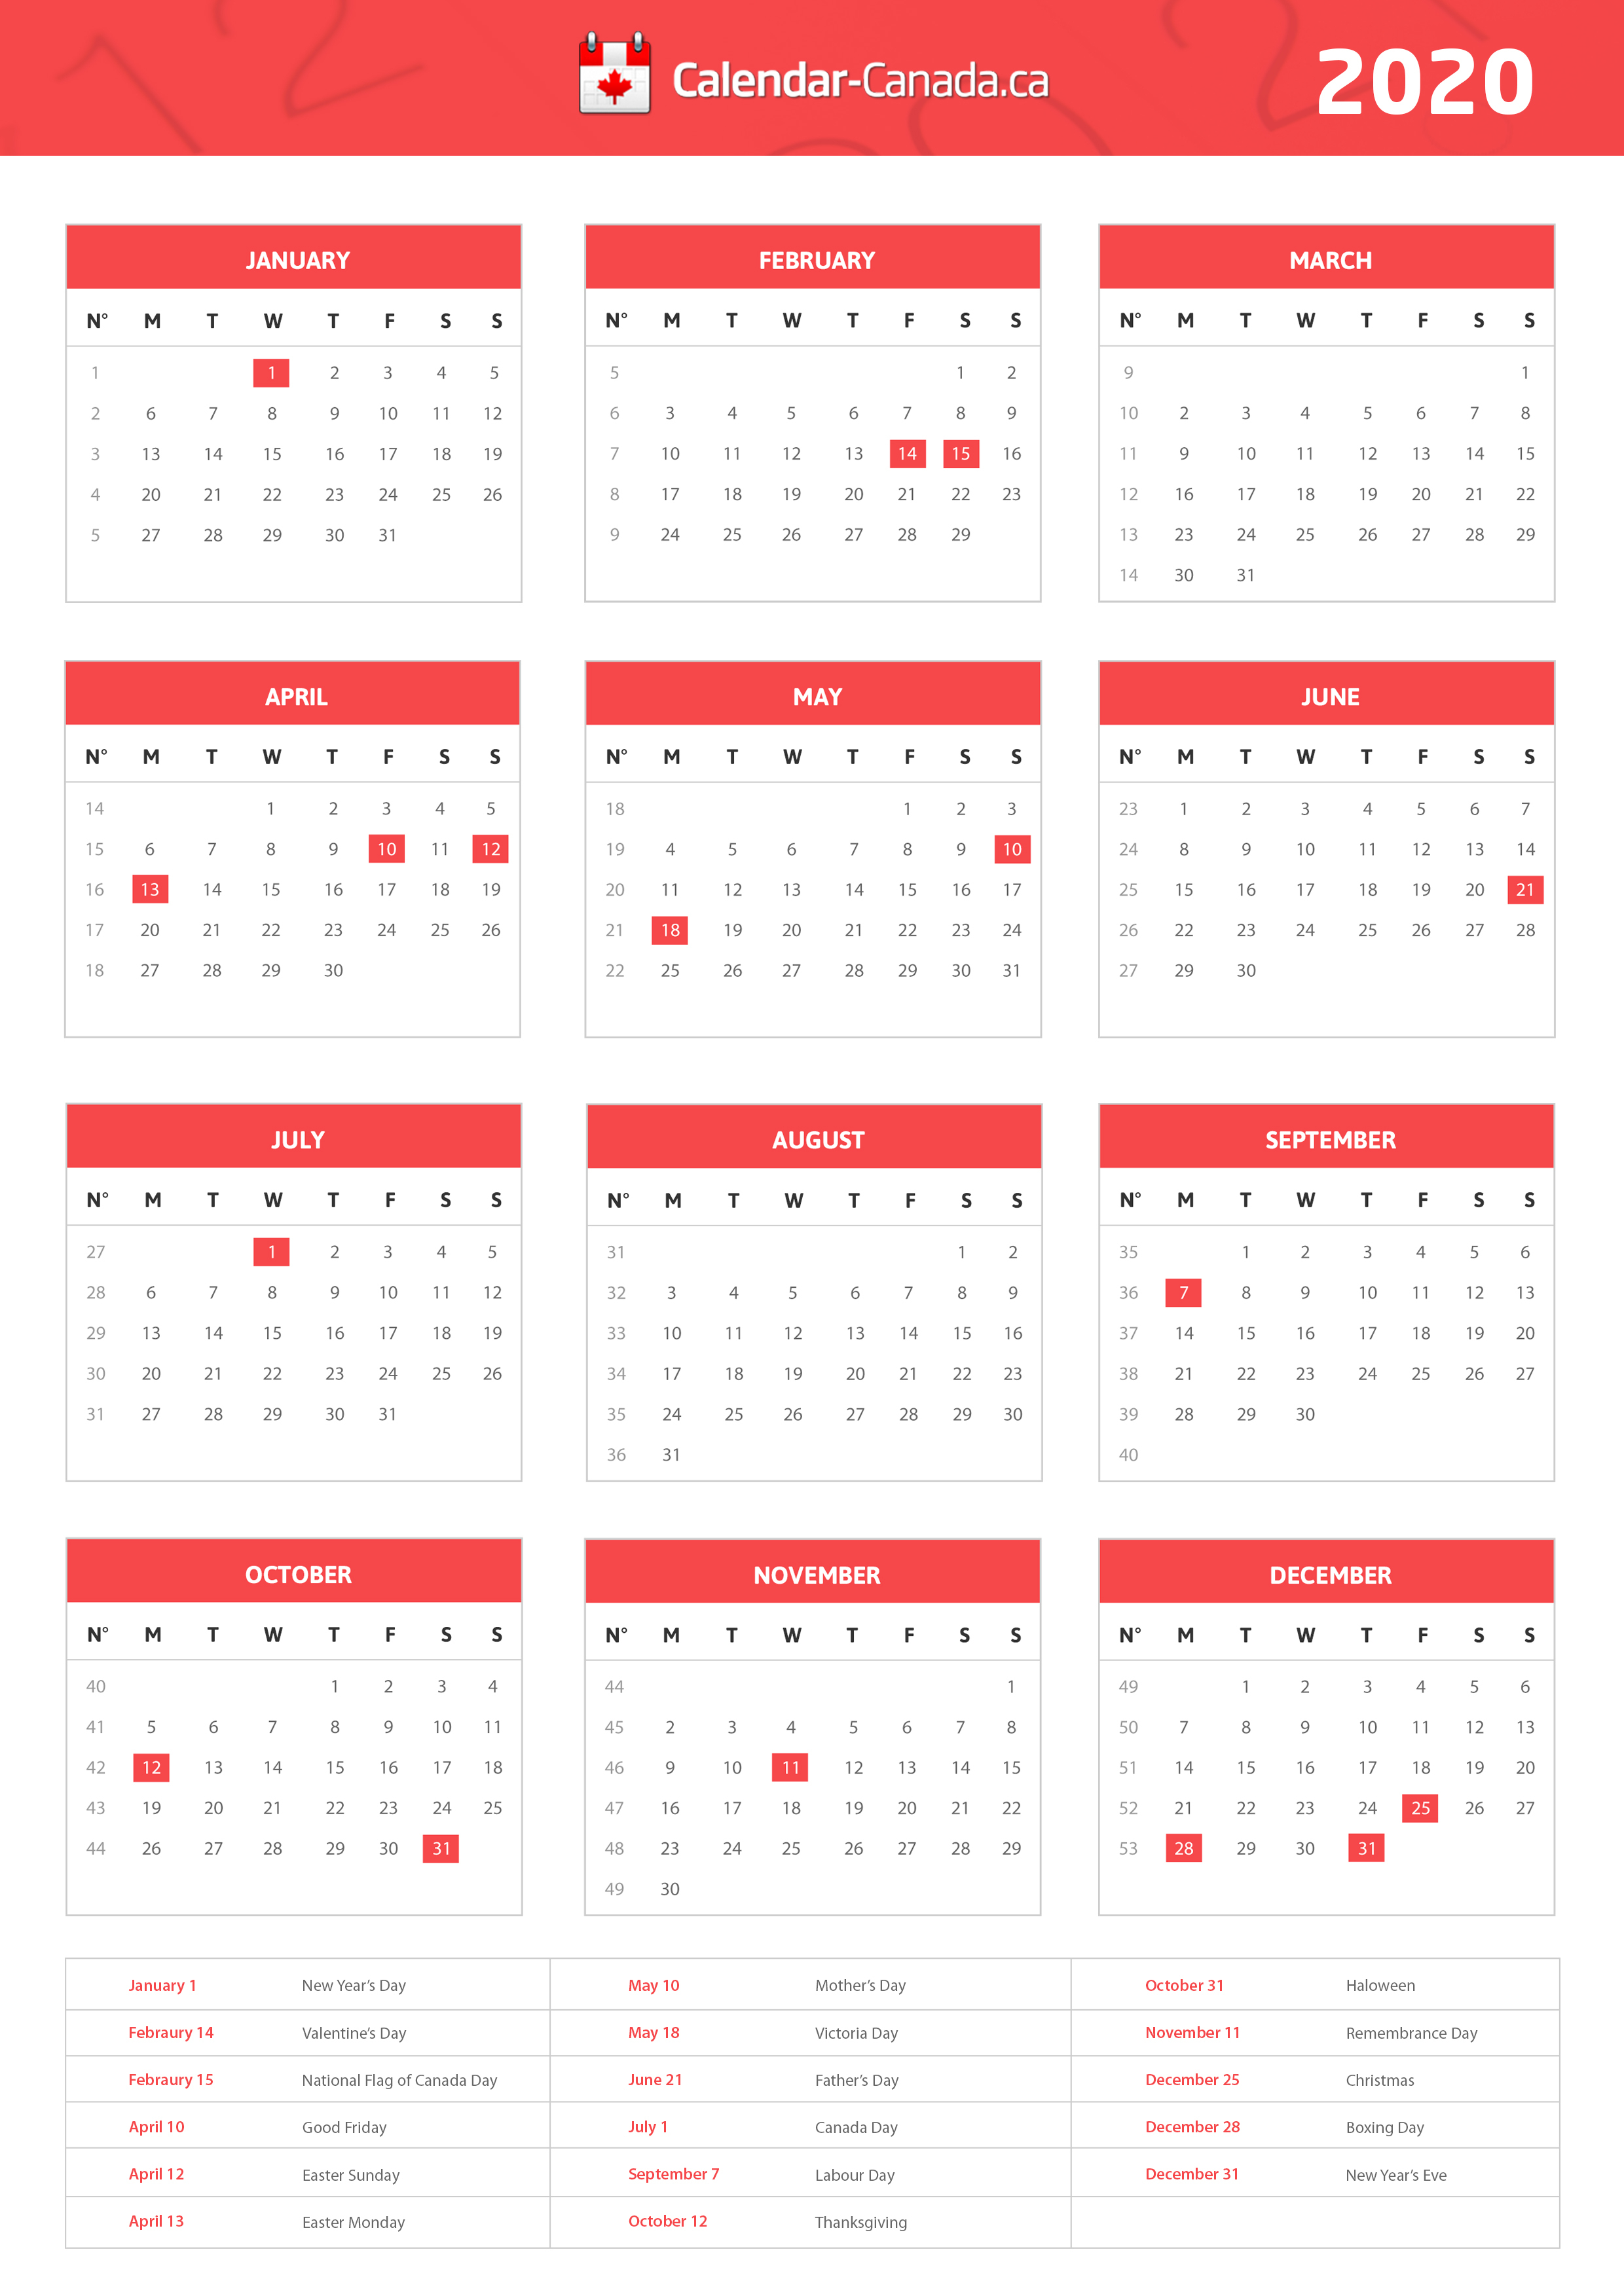 2020 Holidays Canada - Statutory, National & Local Holidays For 2020